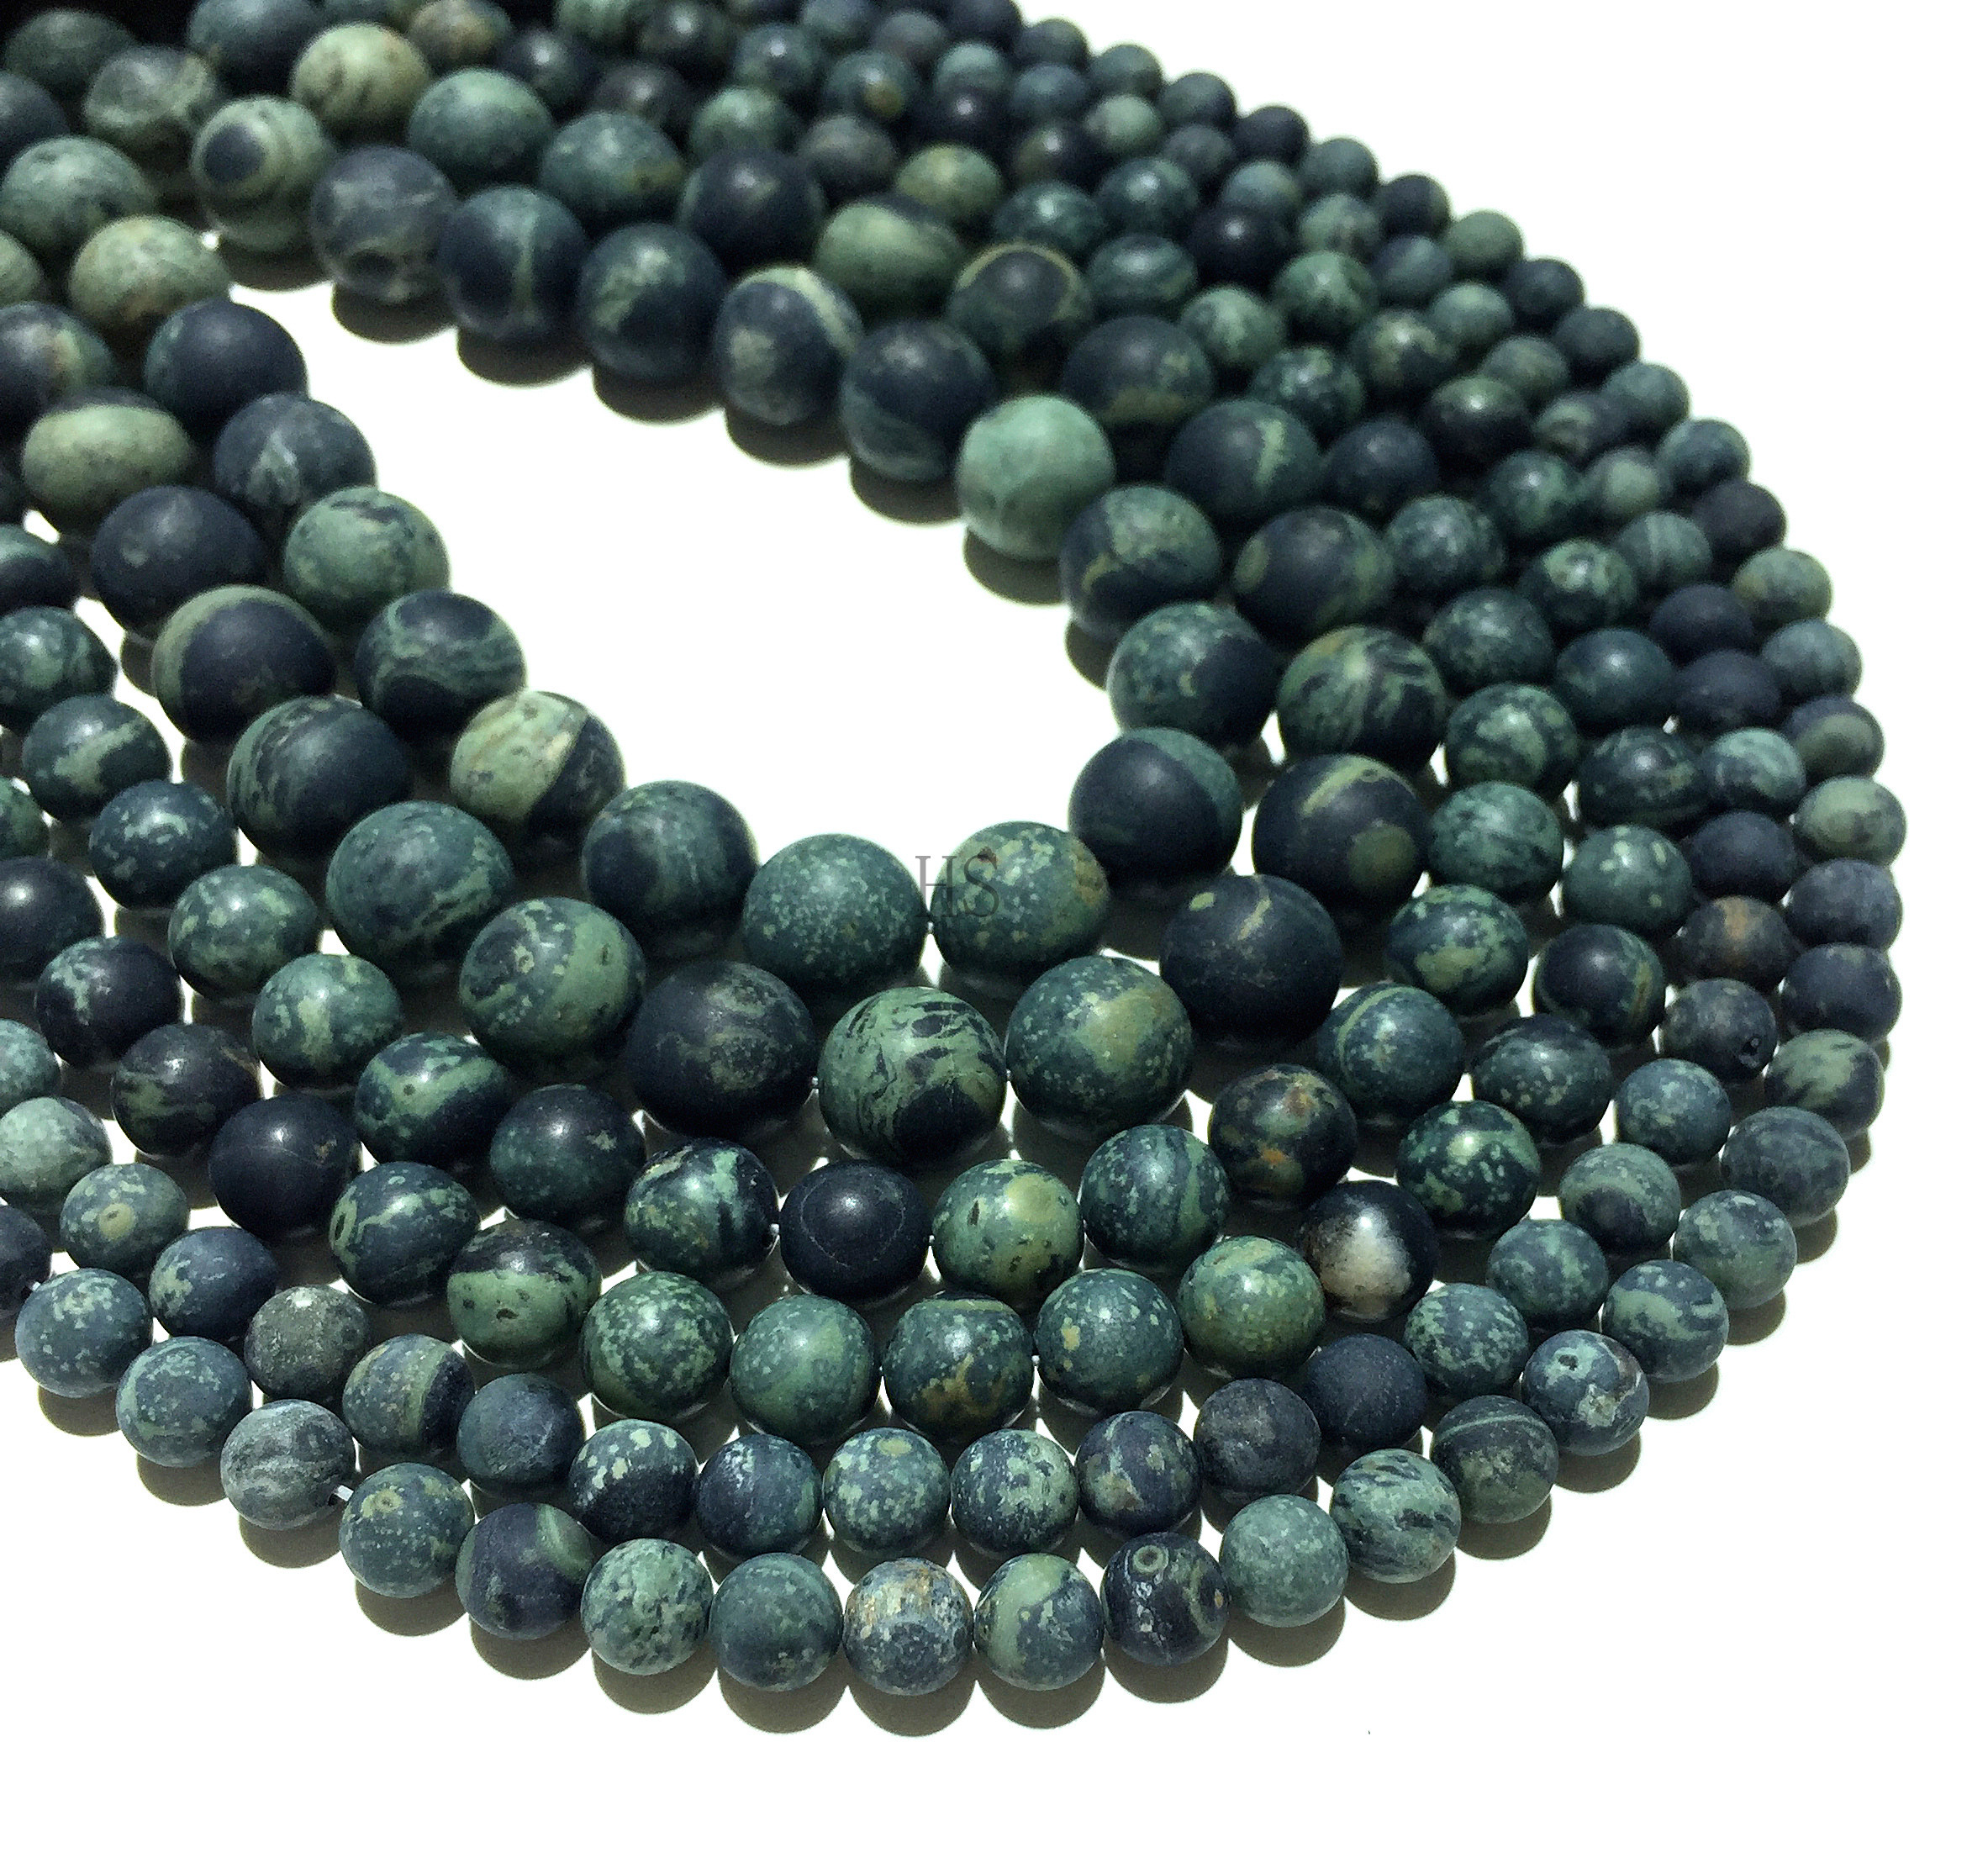 Factory Price Natural Green kambaba Jasper Matte Round Loose Beads Healing Energy Jewelry <font><b>DIY</b></font> Bracelet Necklace <font><b>4</b></font> 6 8 10 12mm image